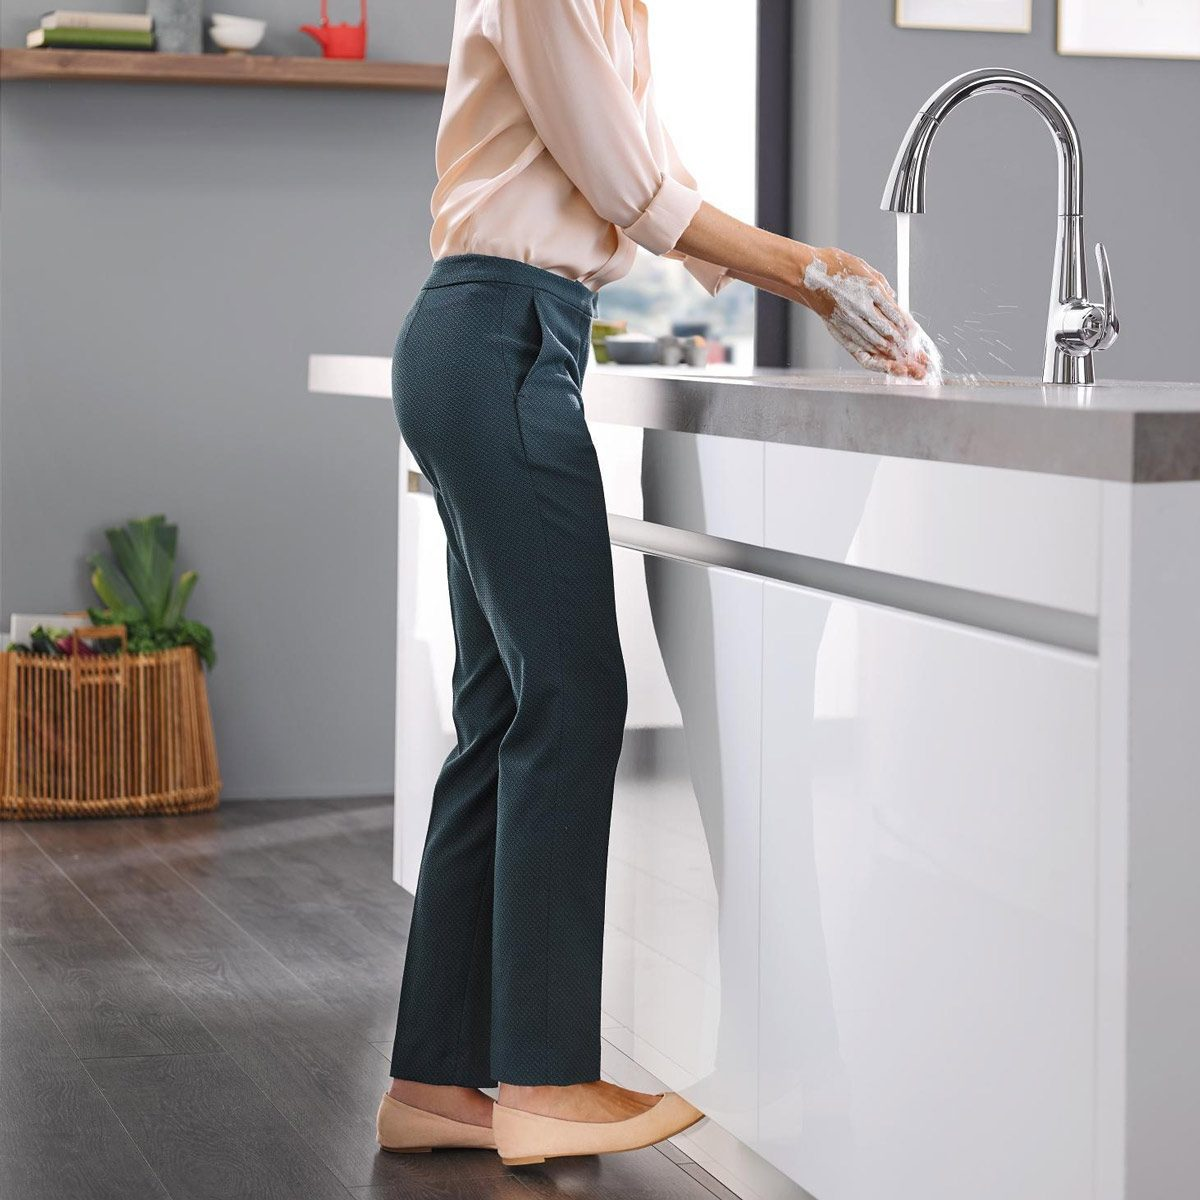 footactivated-faucet sink kitchen